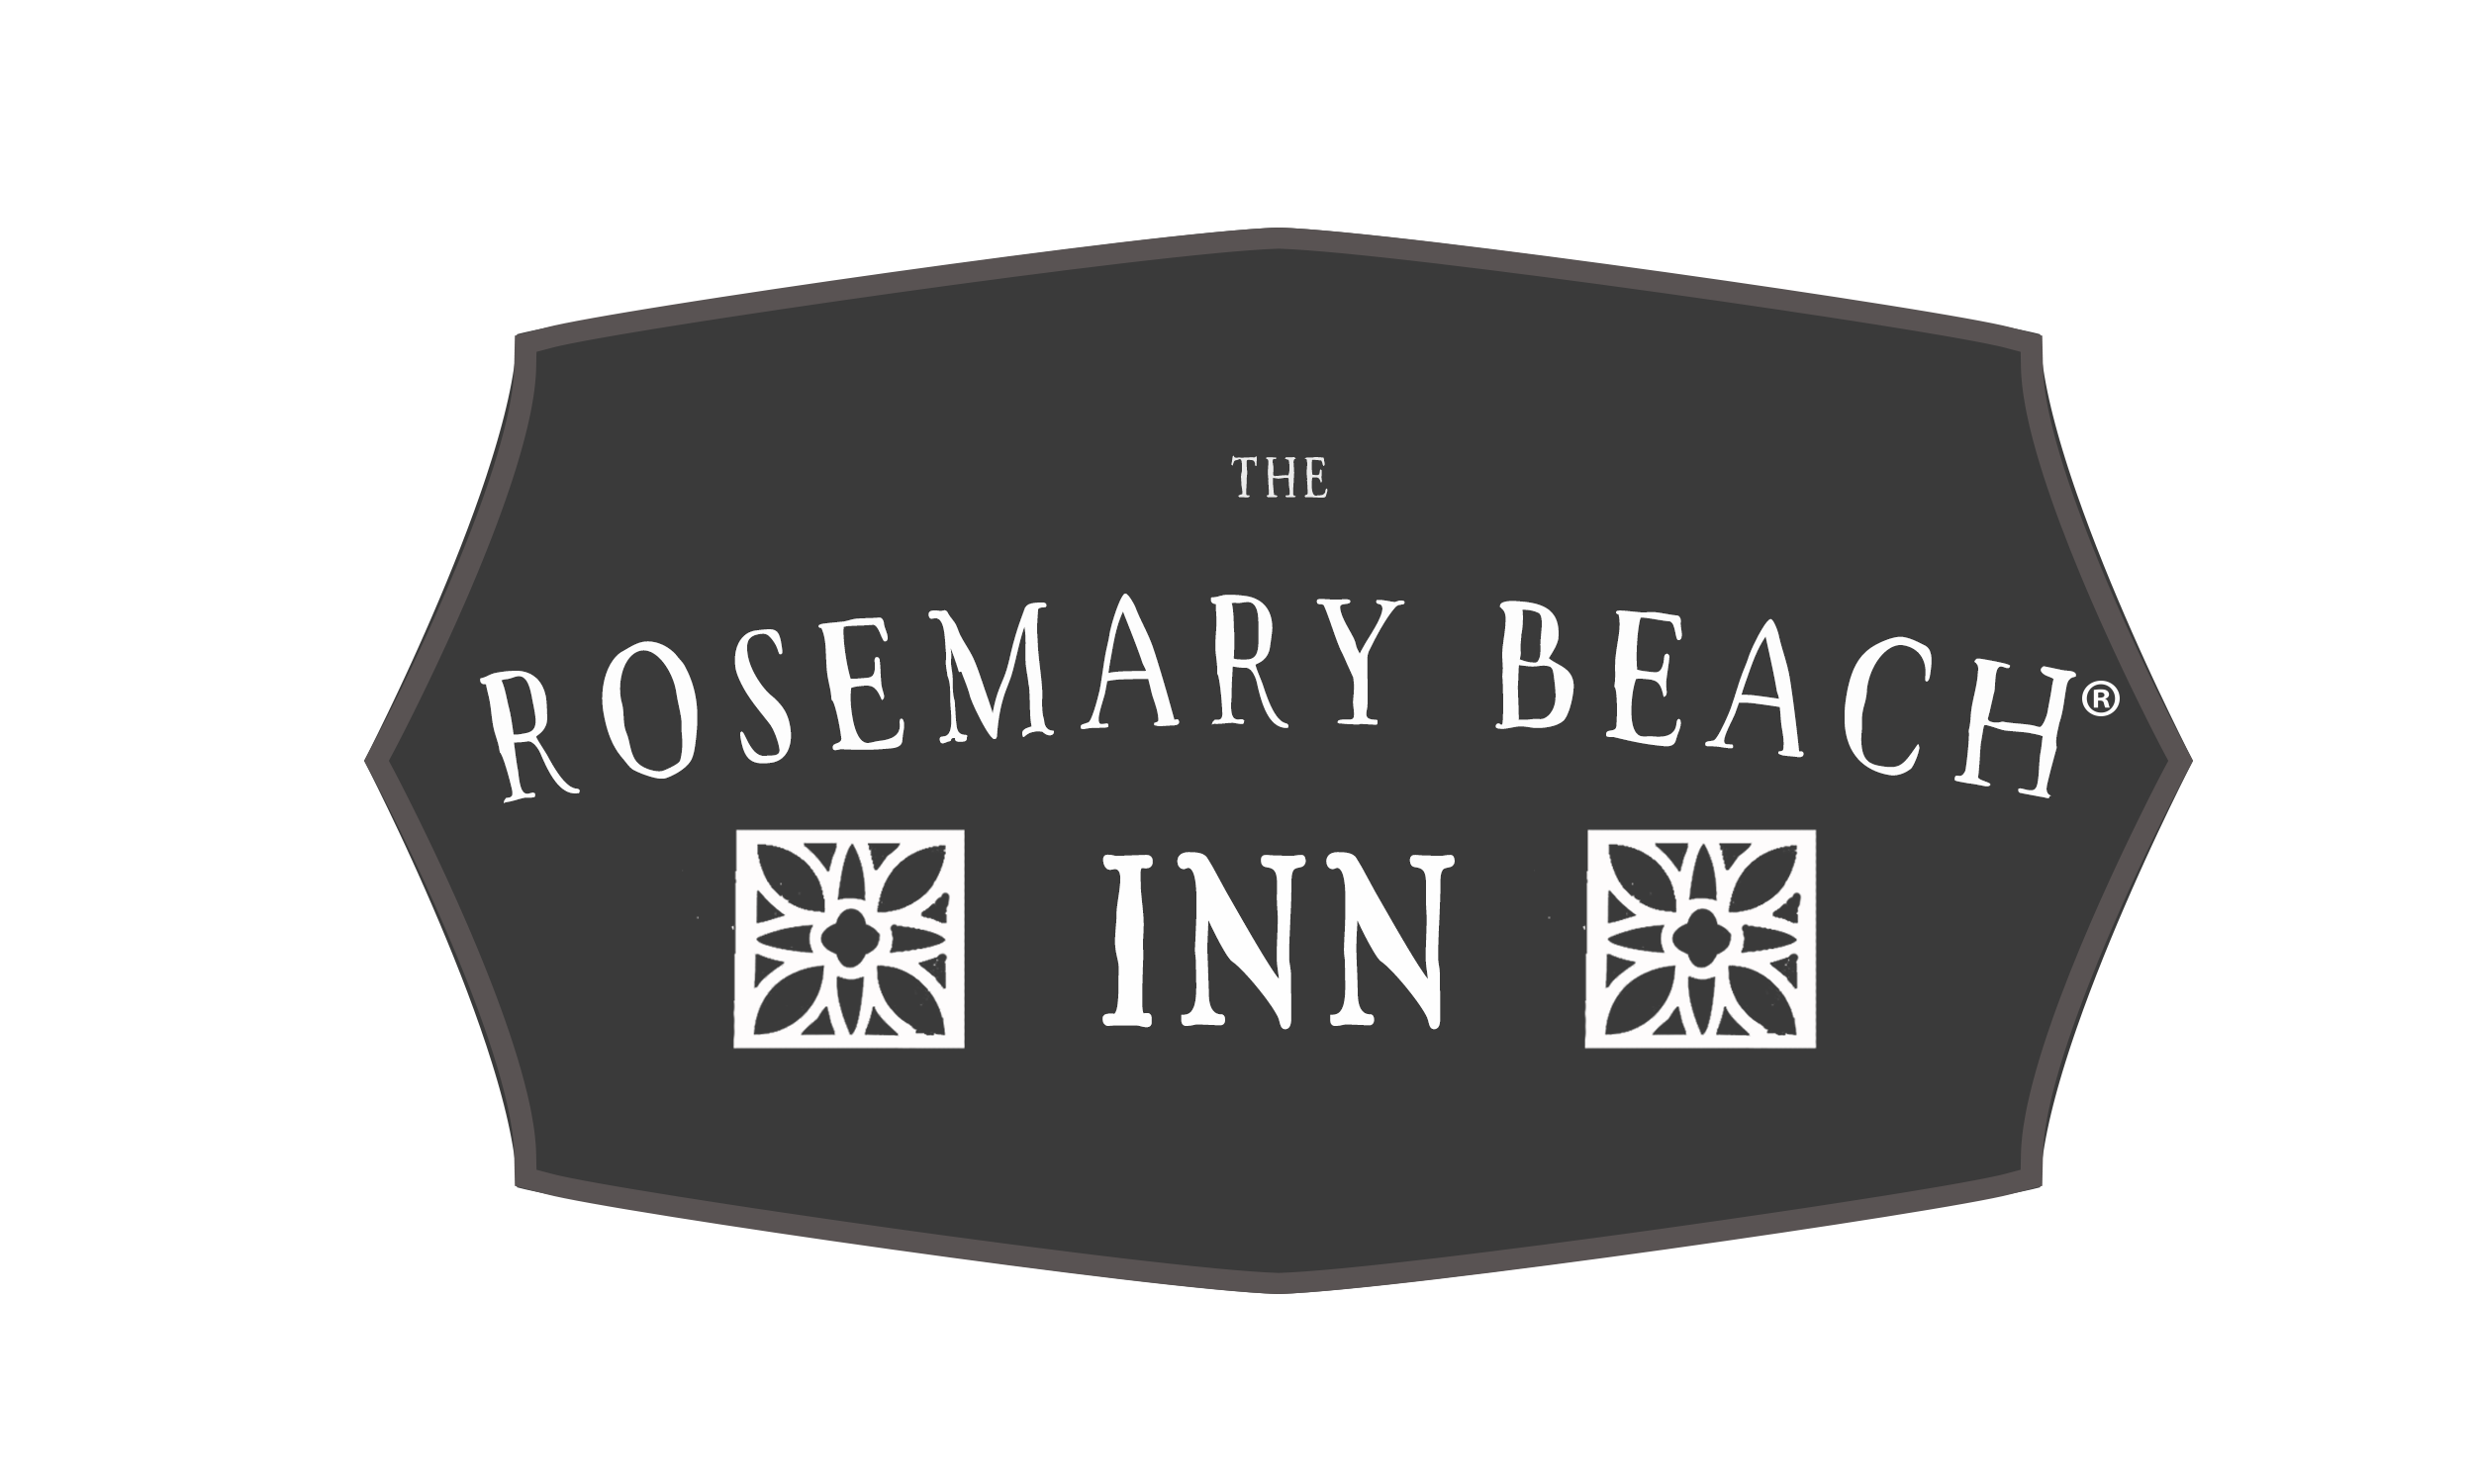 Rosemary Beach Inn | 844-865-5783